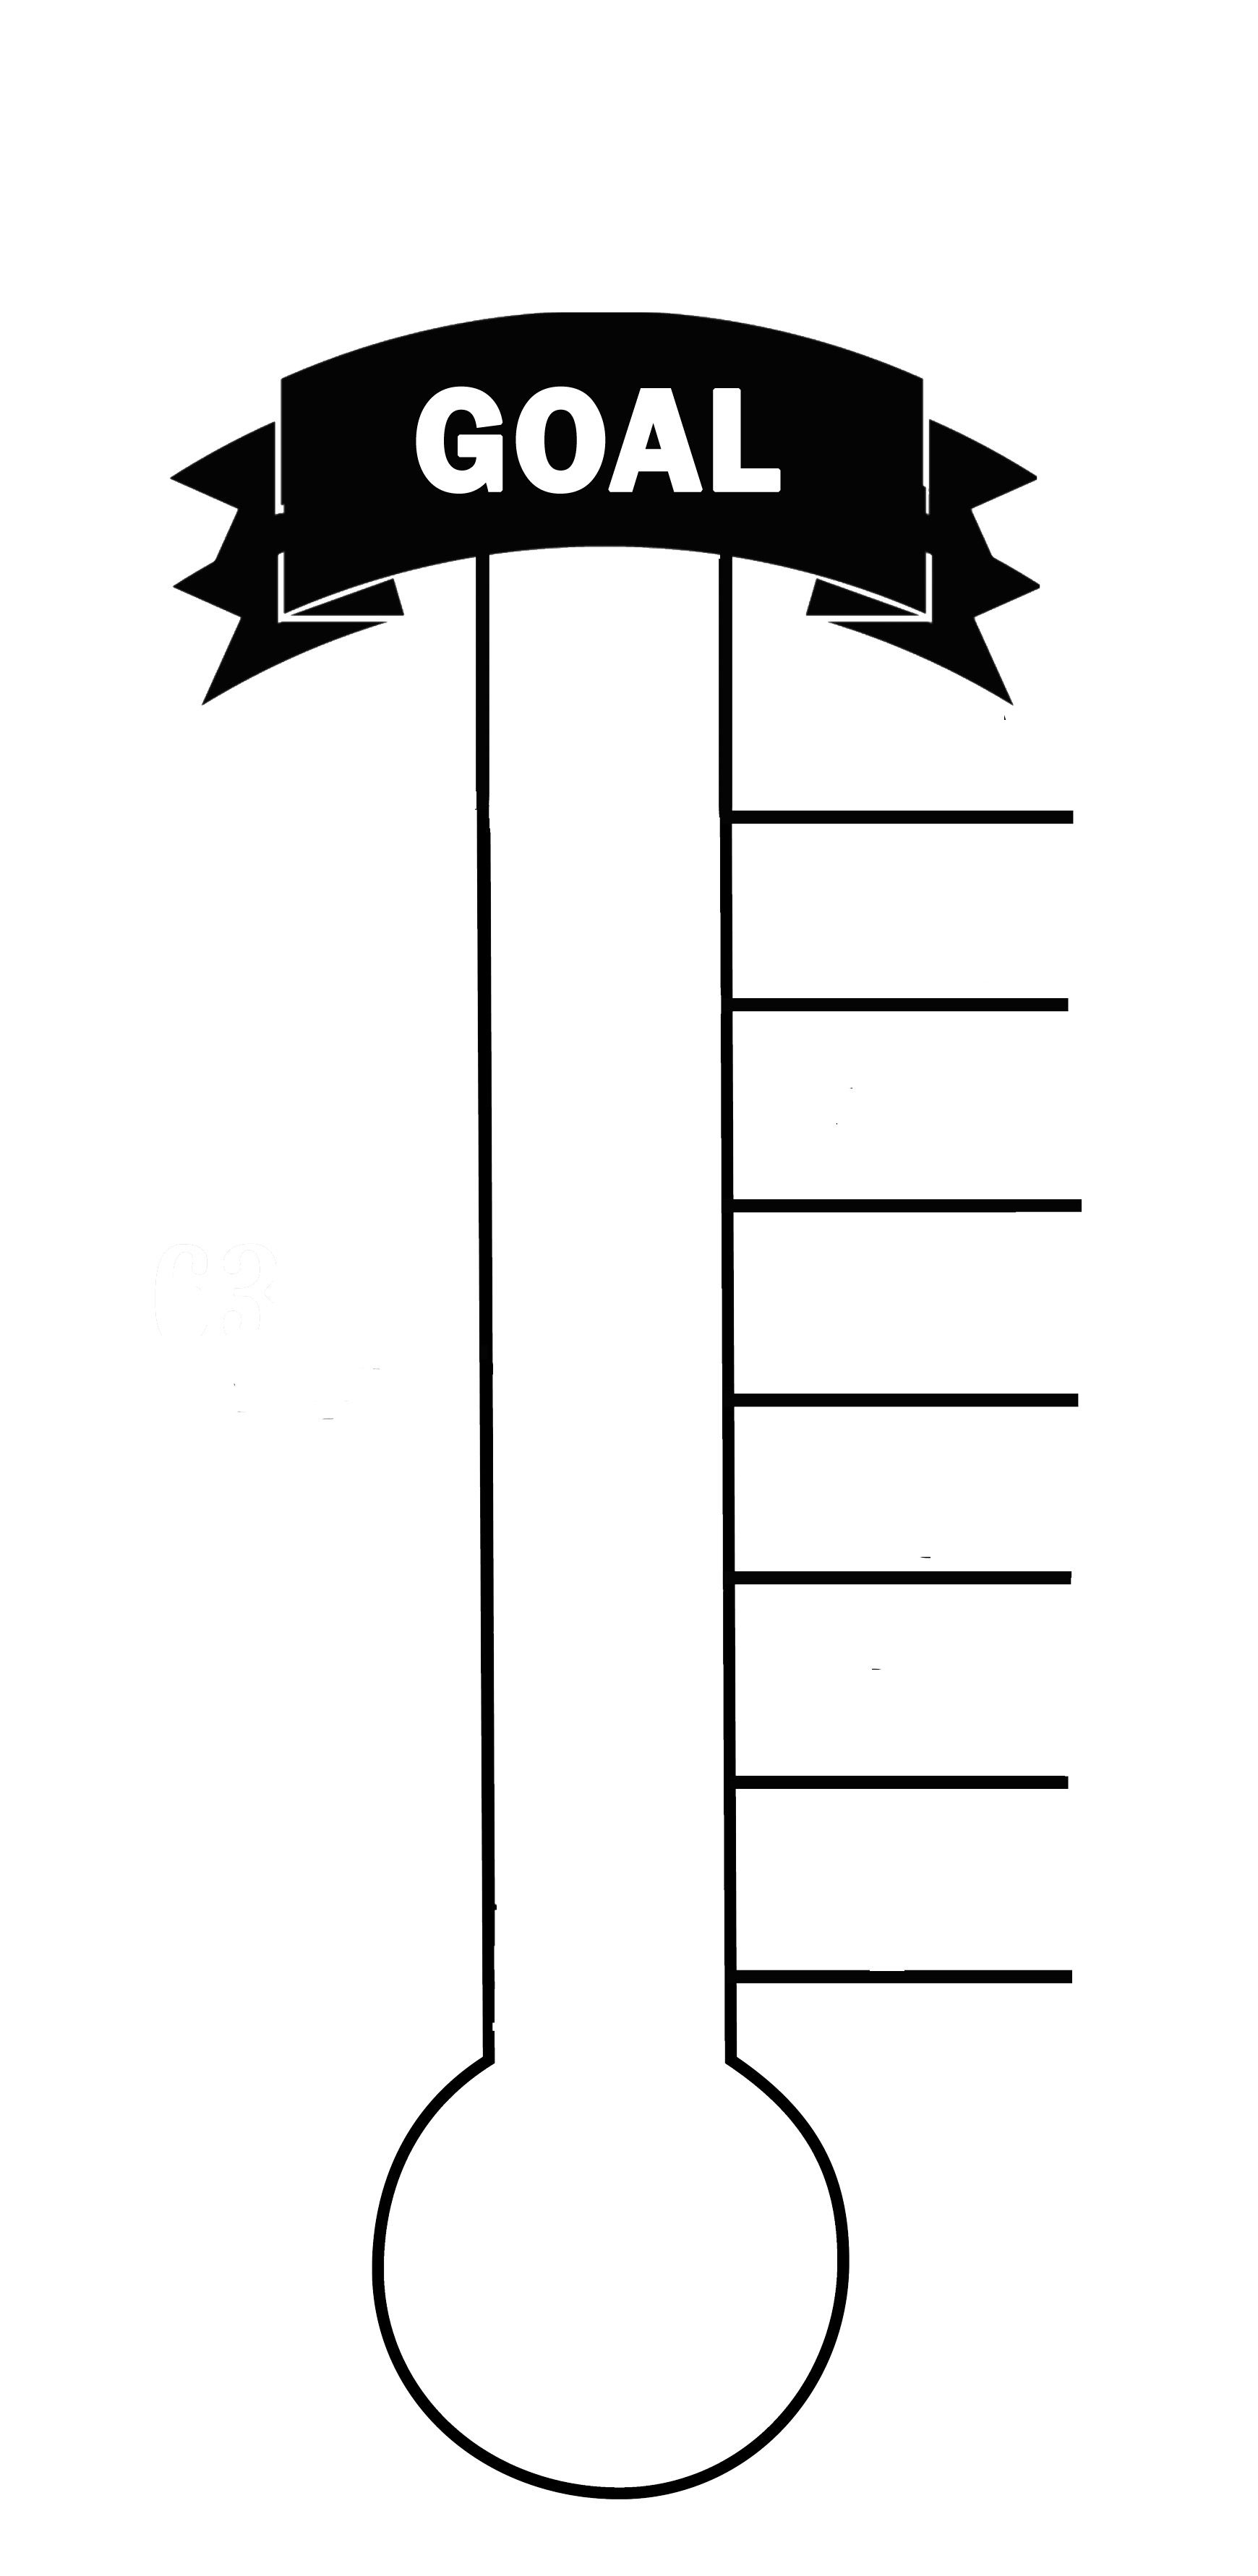 Blank Thermometer Printable for Fund Raising & Creating a Goal ...